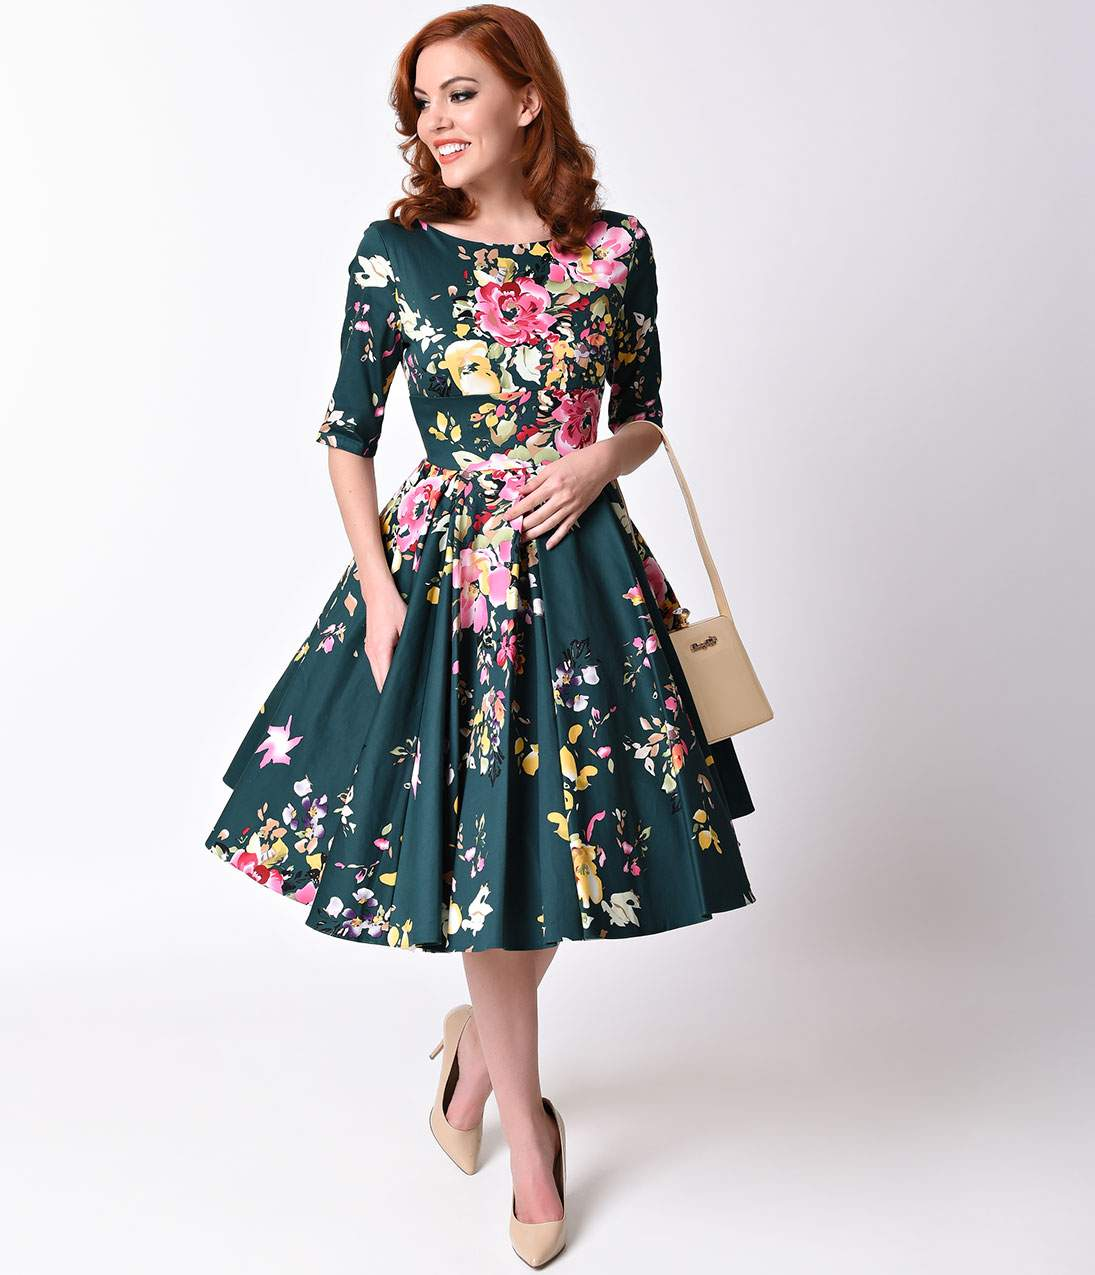 Vintage Style Dresses Are From A Particular Period Of Fashion Of A Bygone Era